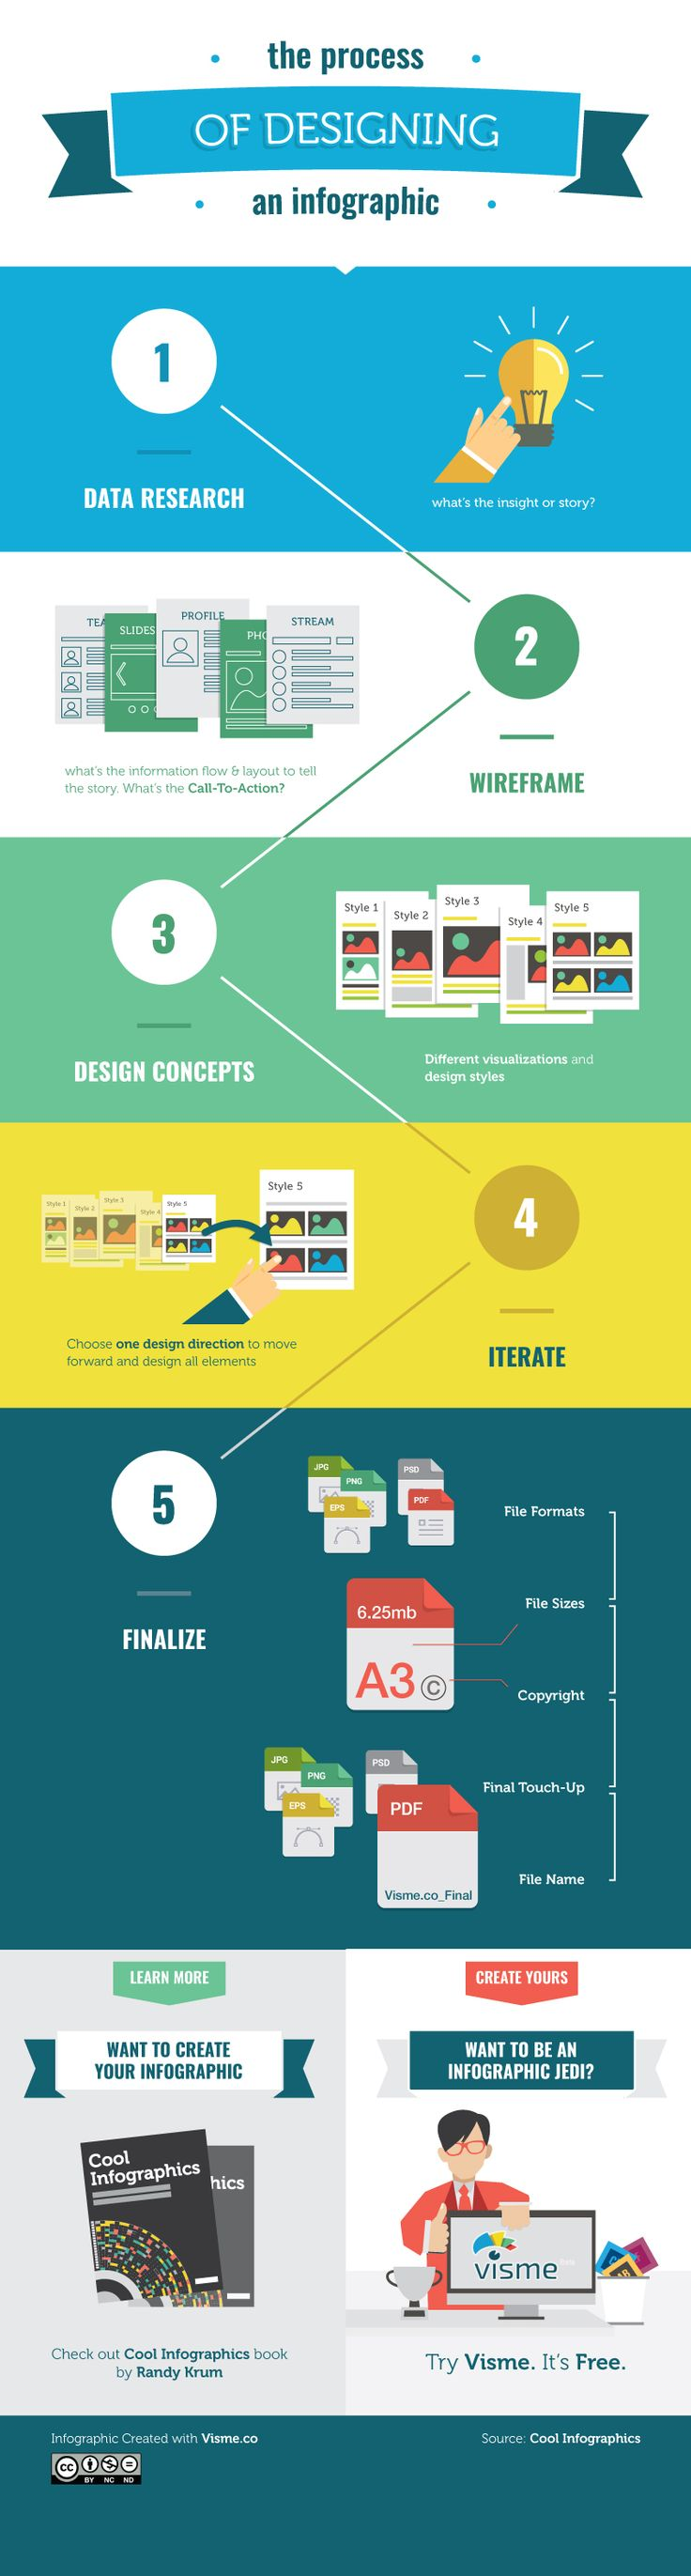 The process of designing an infographic! Simplified in 5 steps!